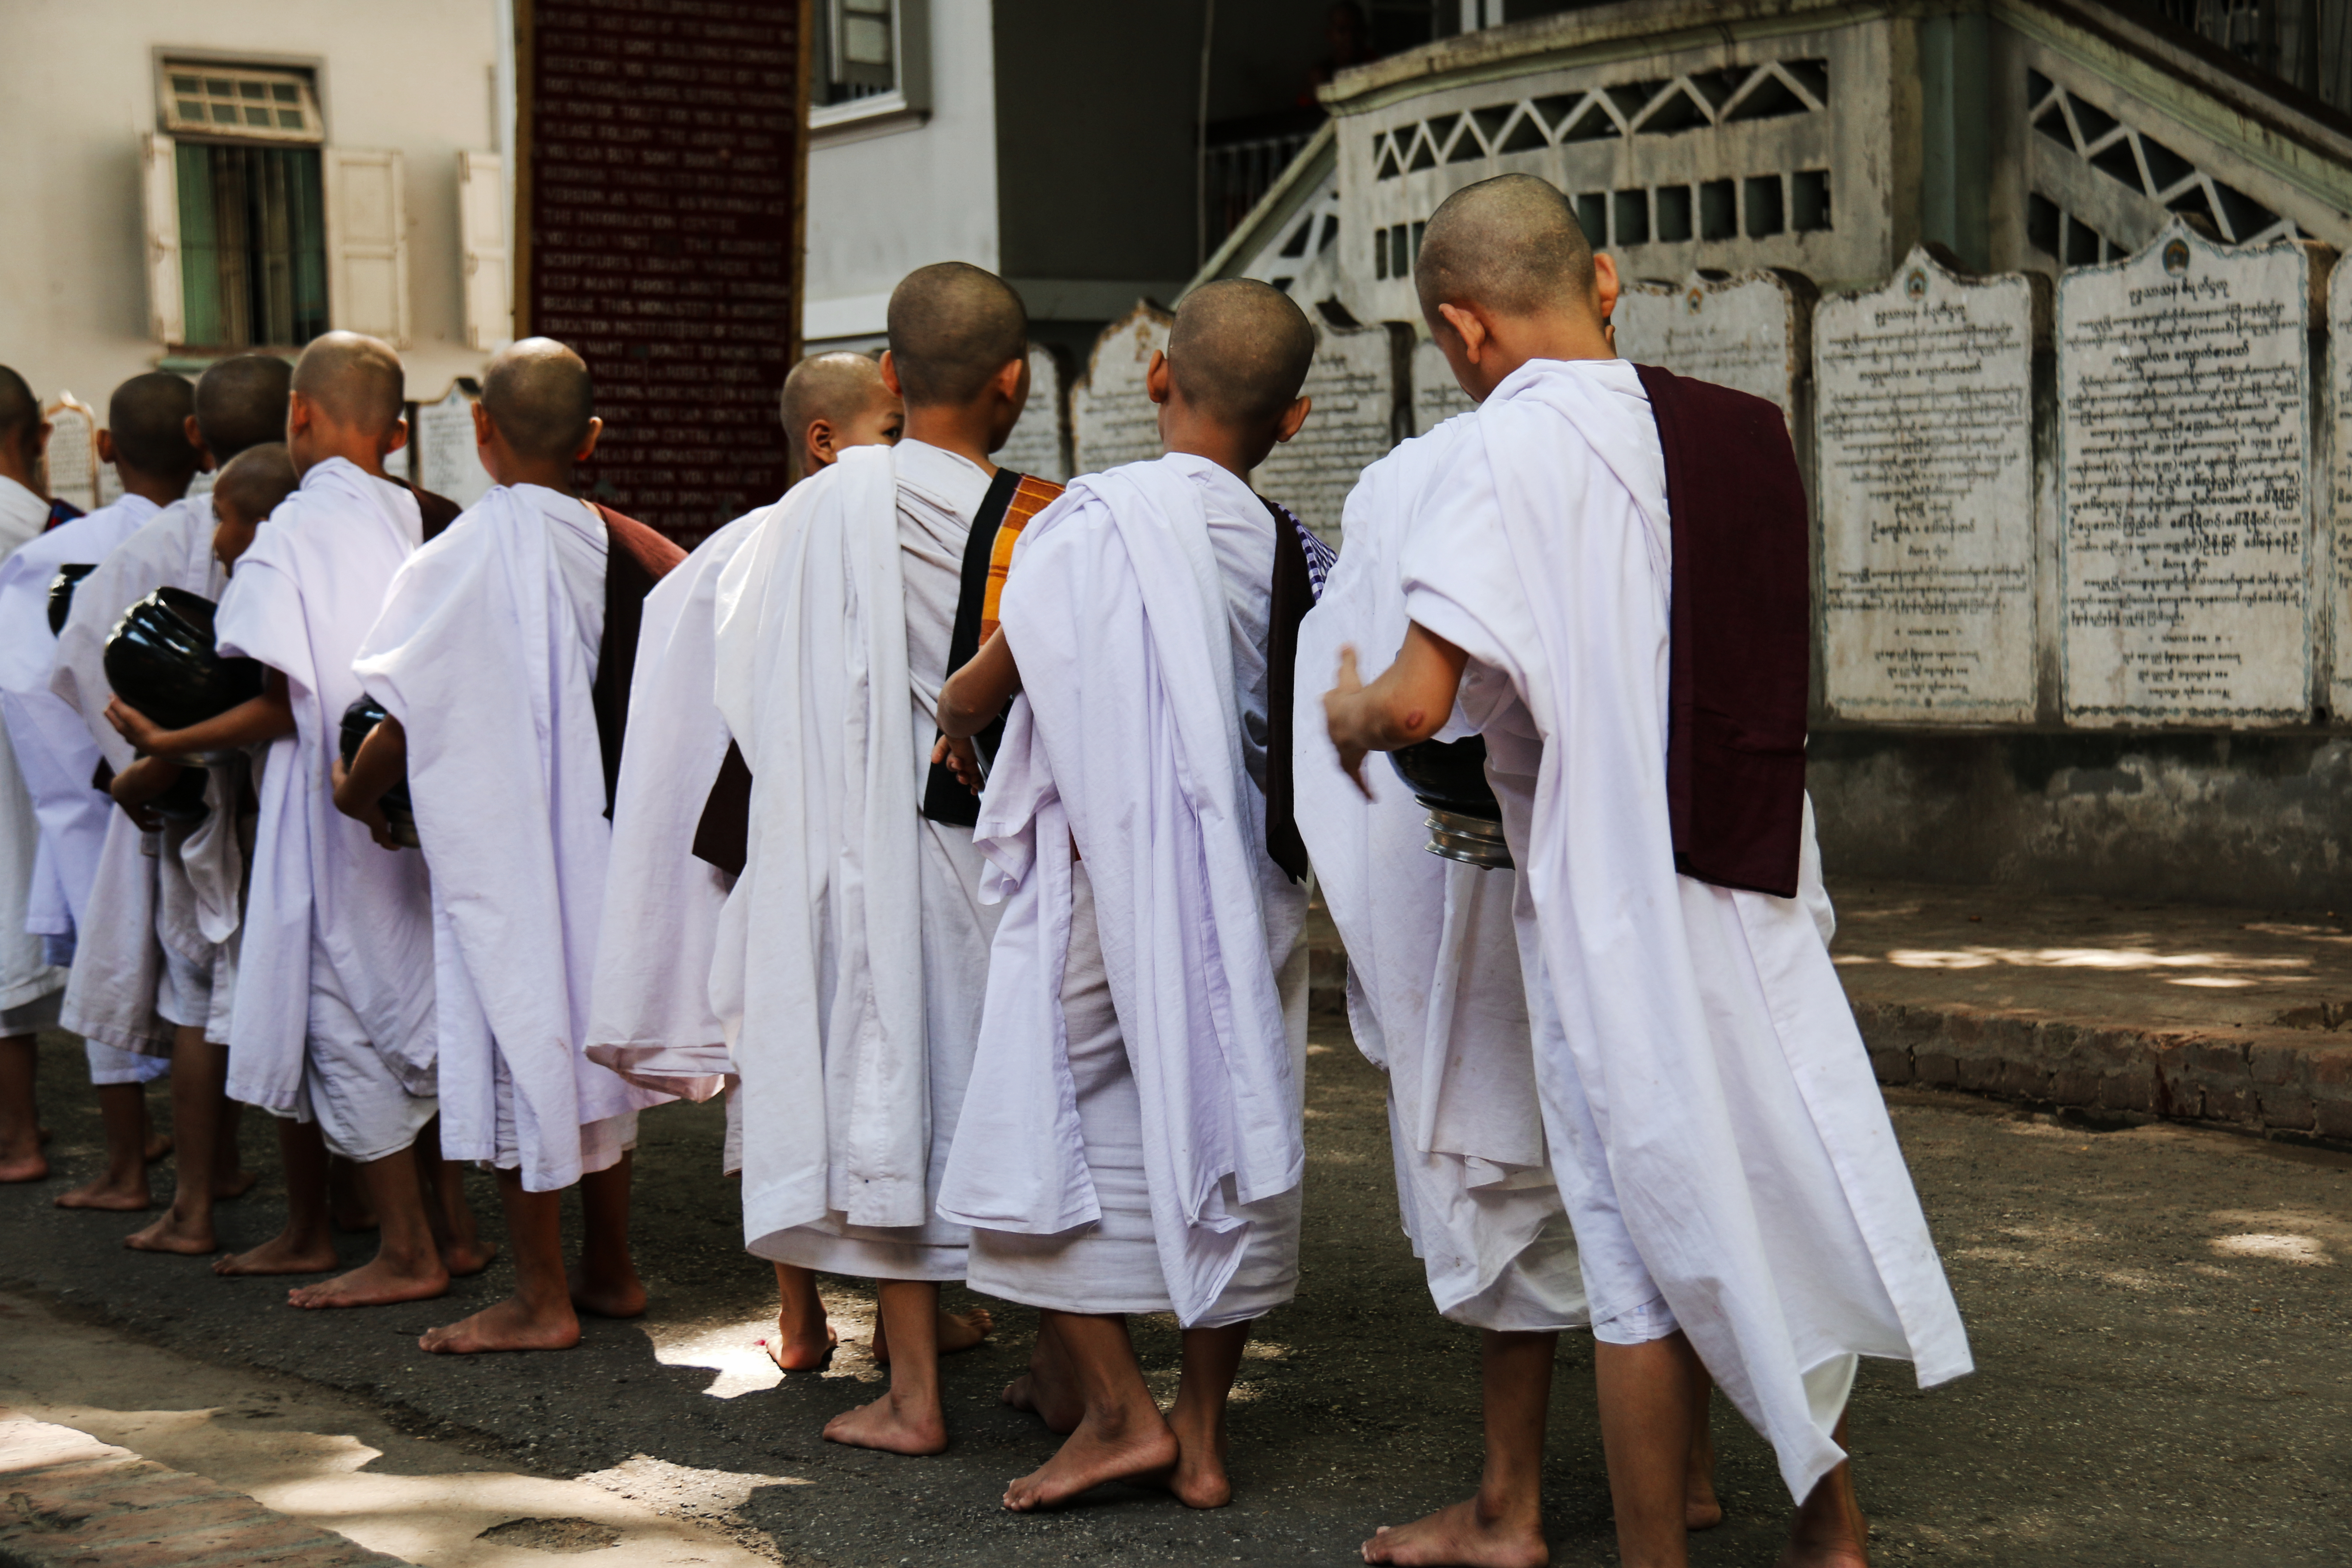 Burma Buddhist Monk School